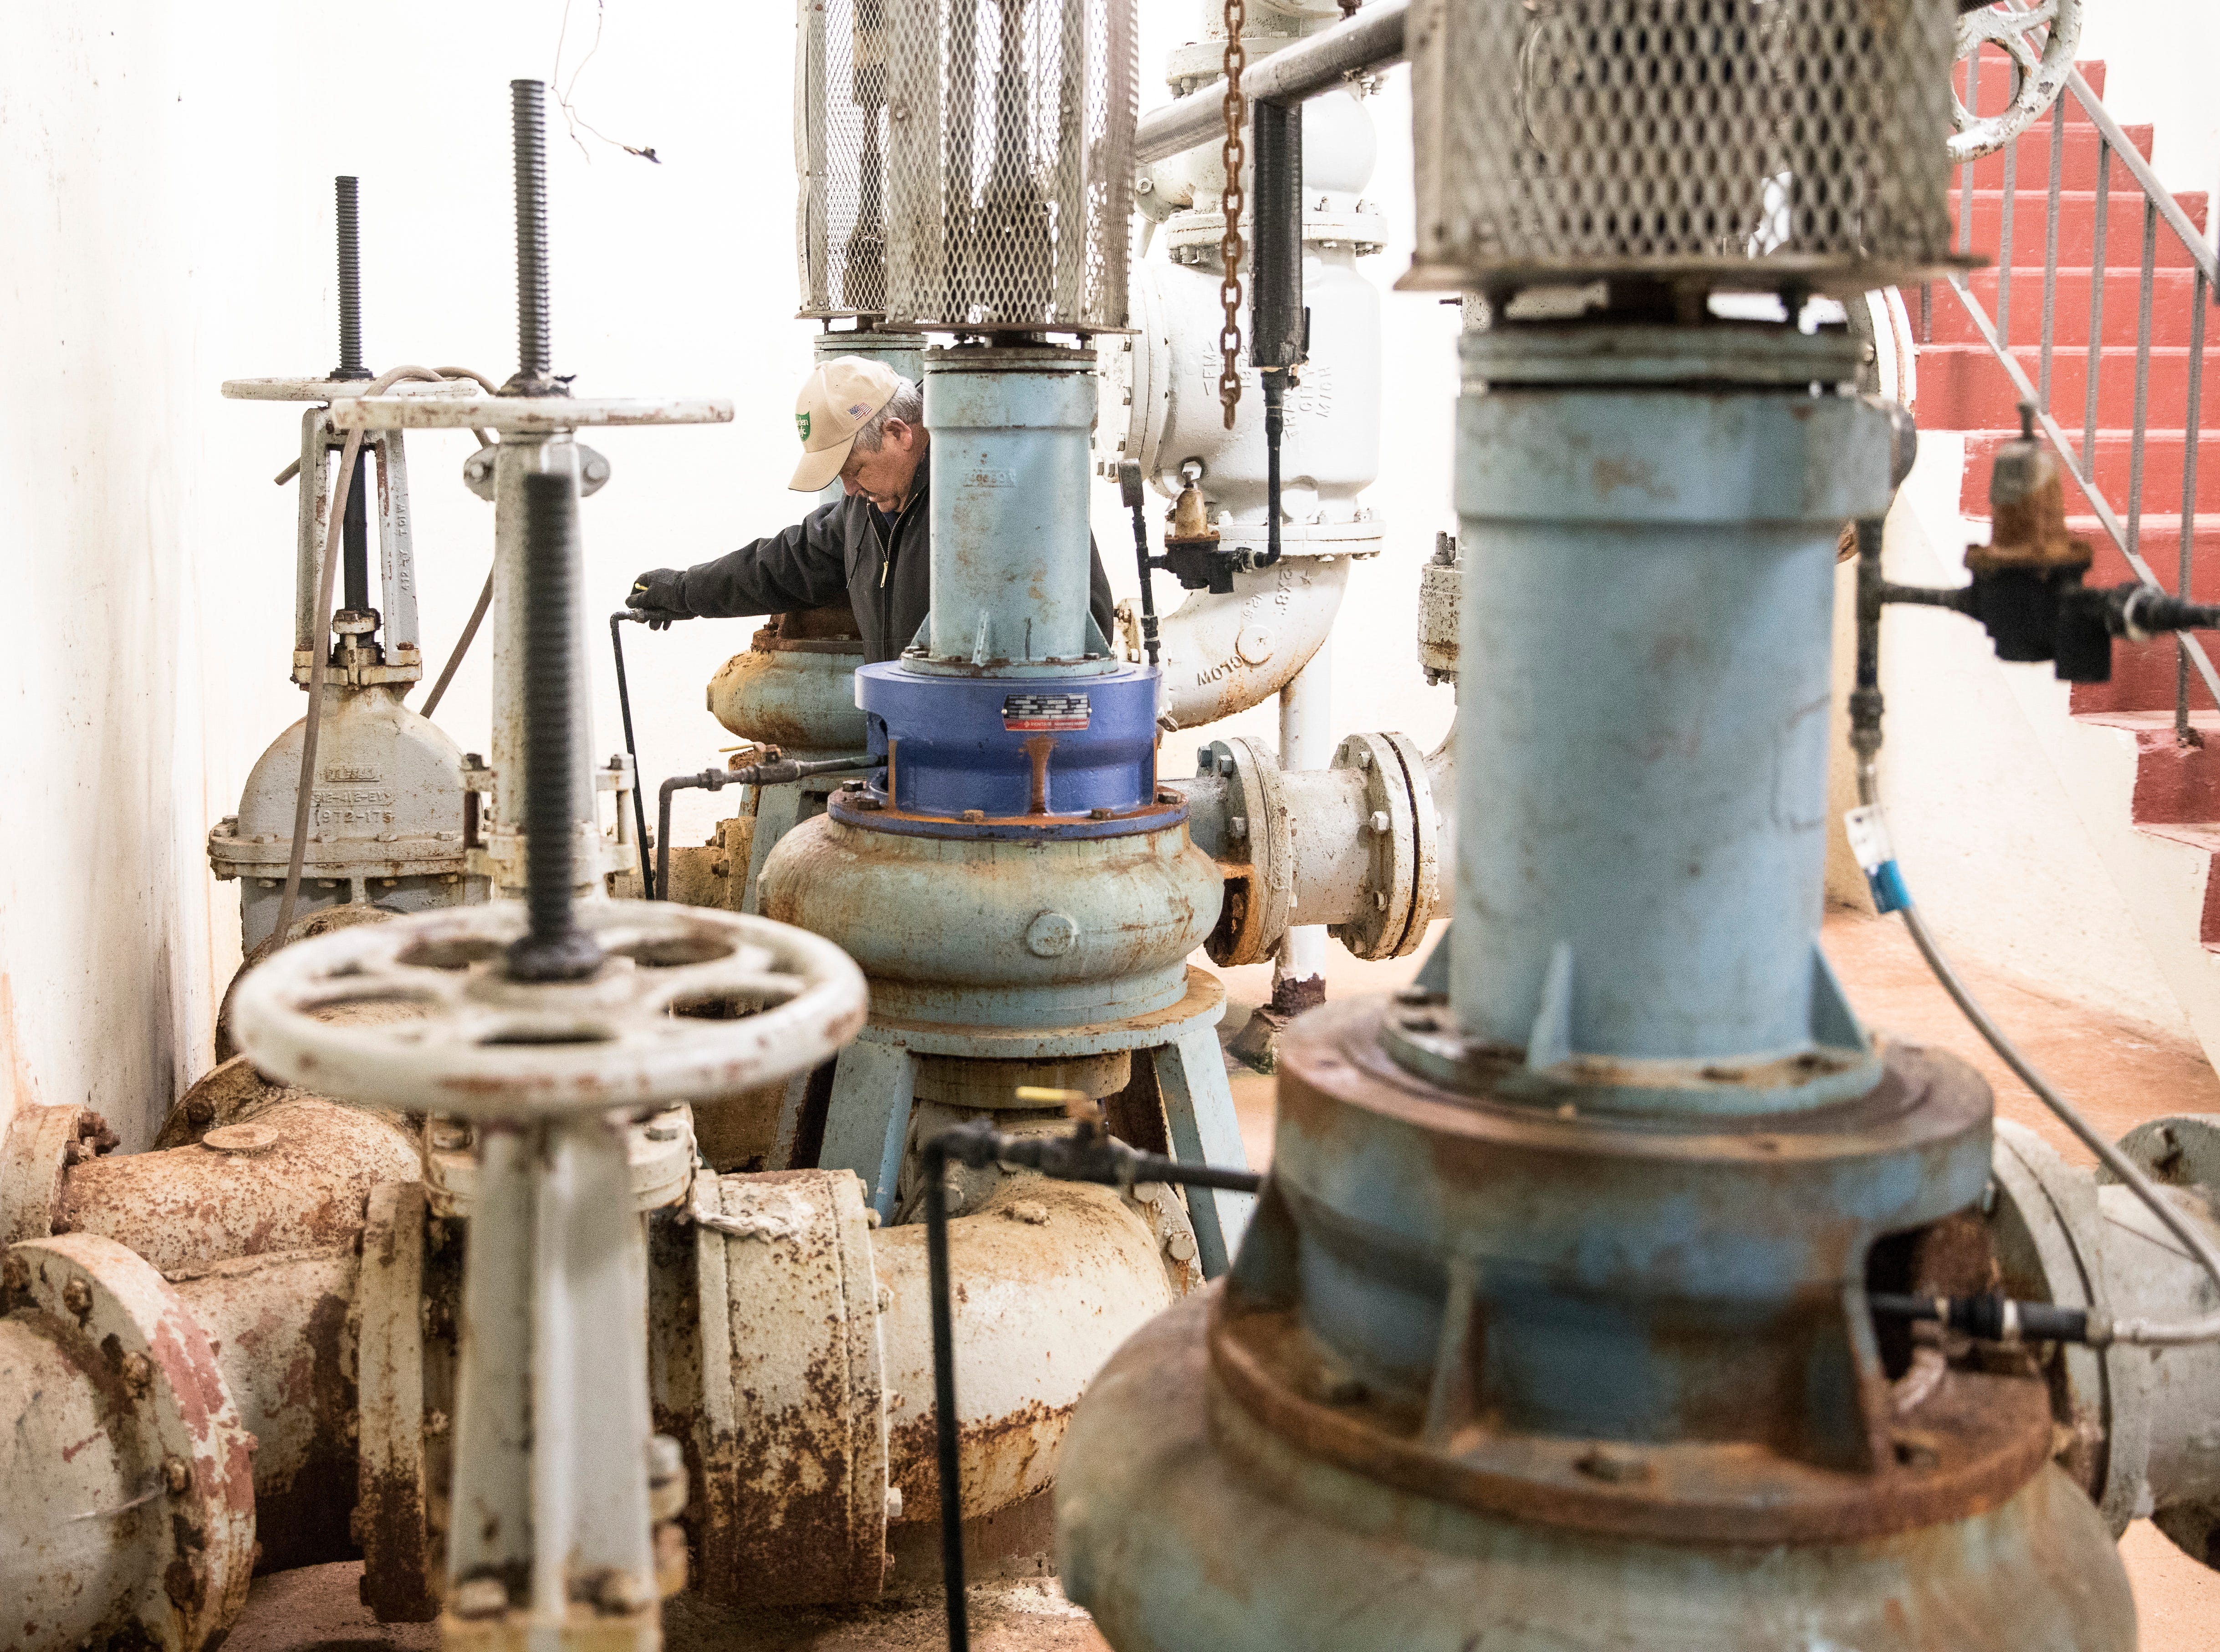 Revis Osborne makes sure the original boilers from the 1930s are still in working condition. They are used in certain circumstance to help the wastewater treatment facility be as efficient as possible.